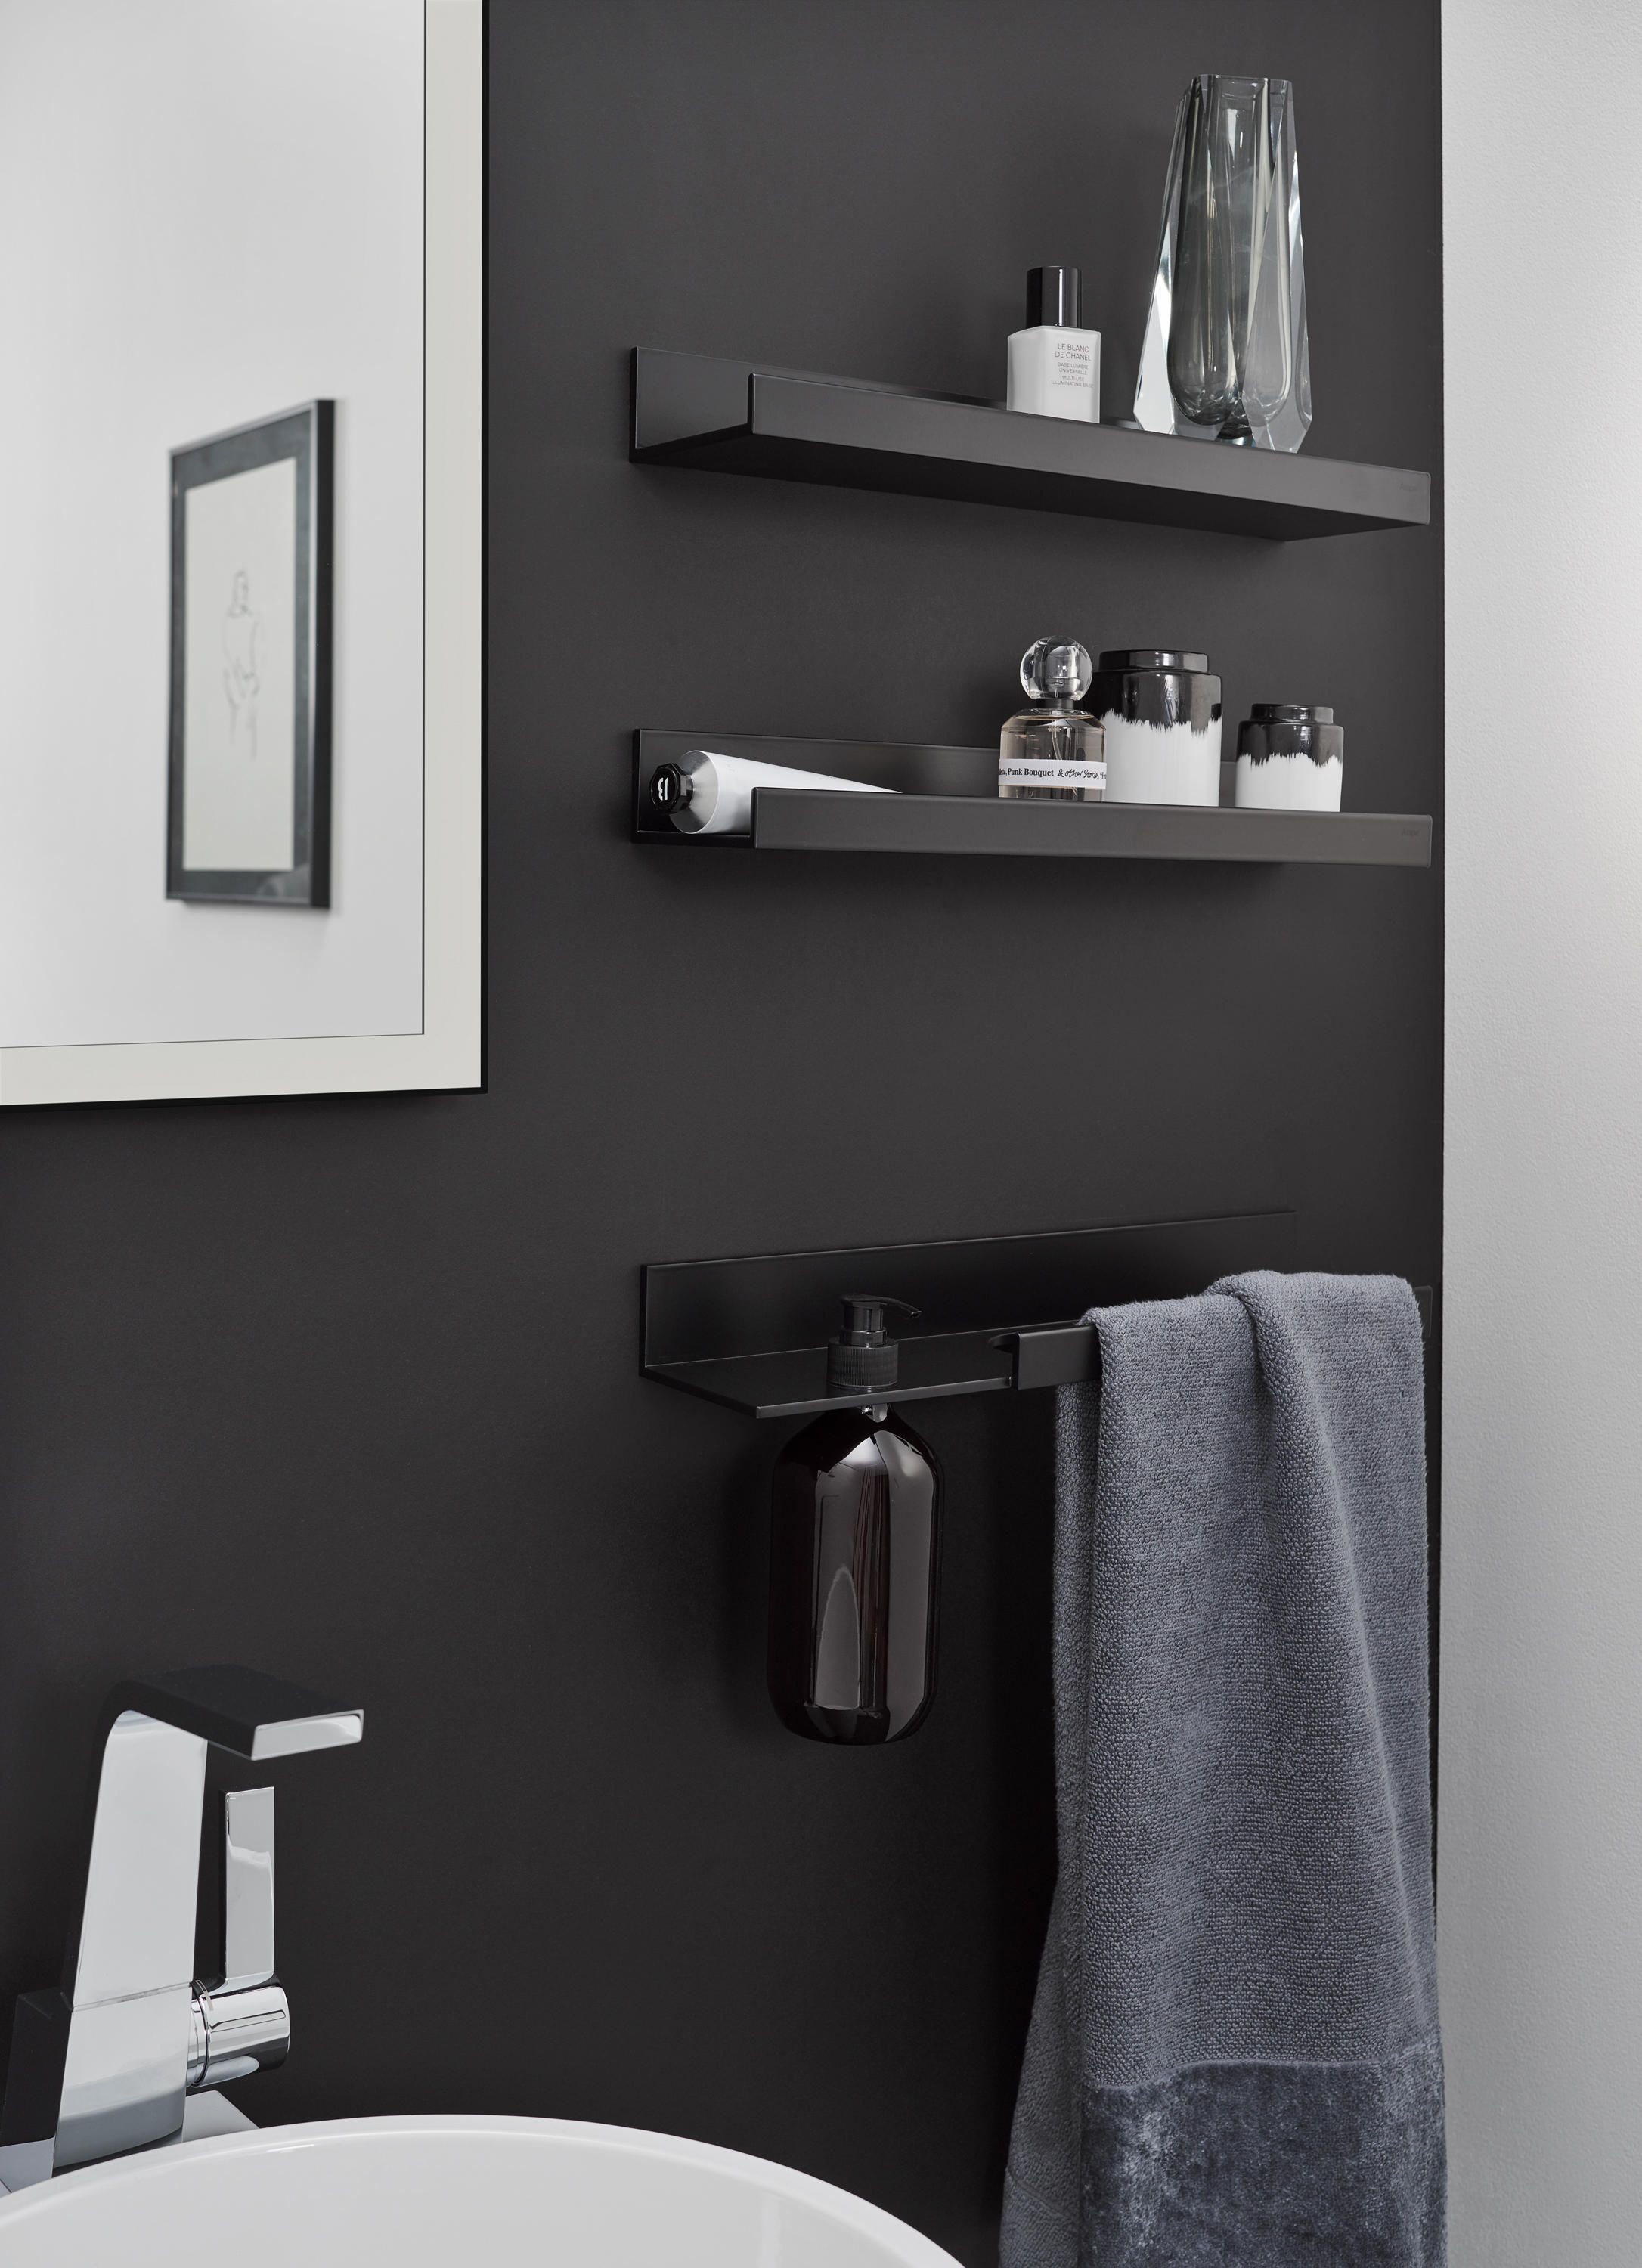 Alape Waschtisch Wc Assist Shelf System As400 By Alape Bathroom In 2019 욕실